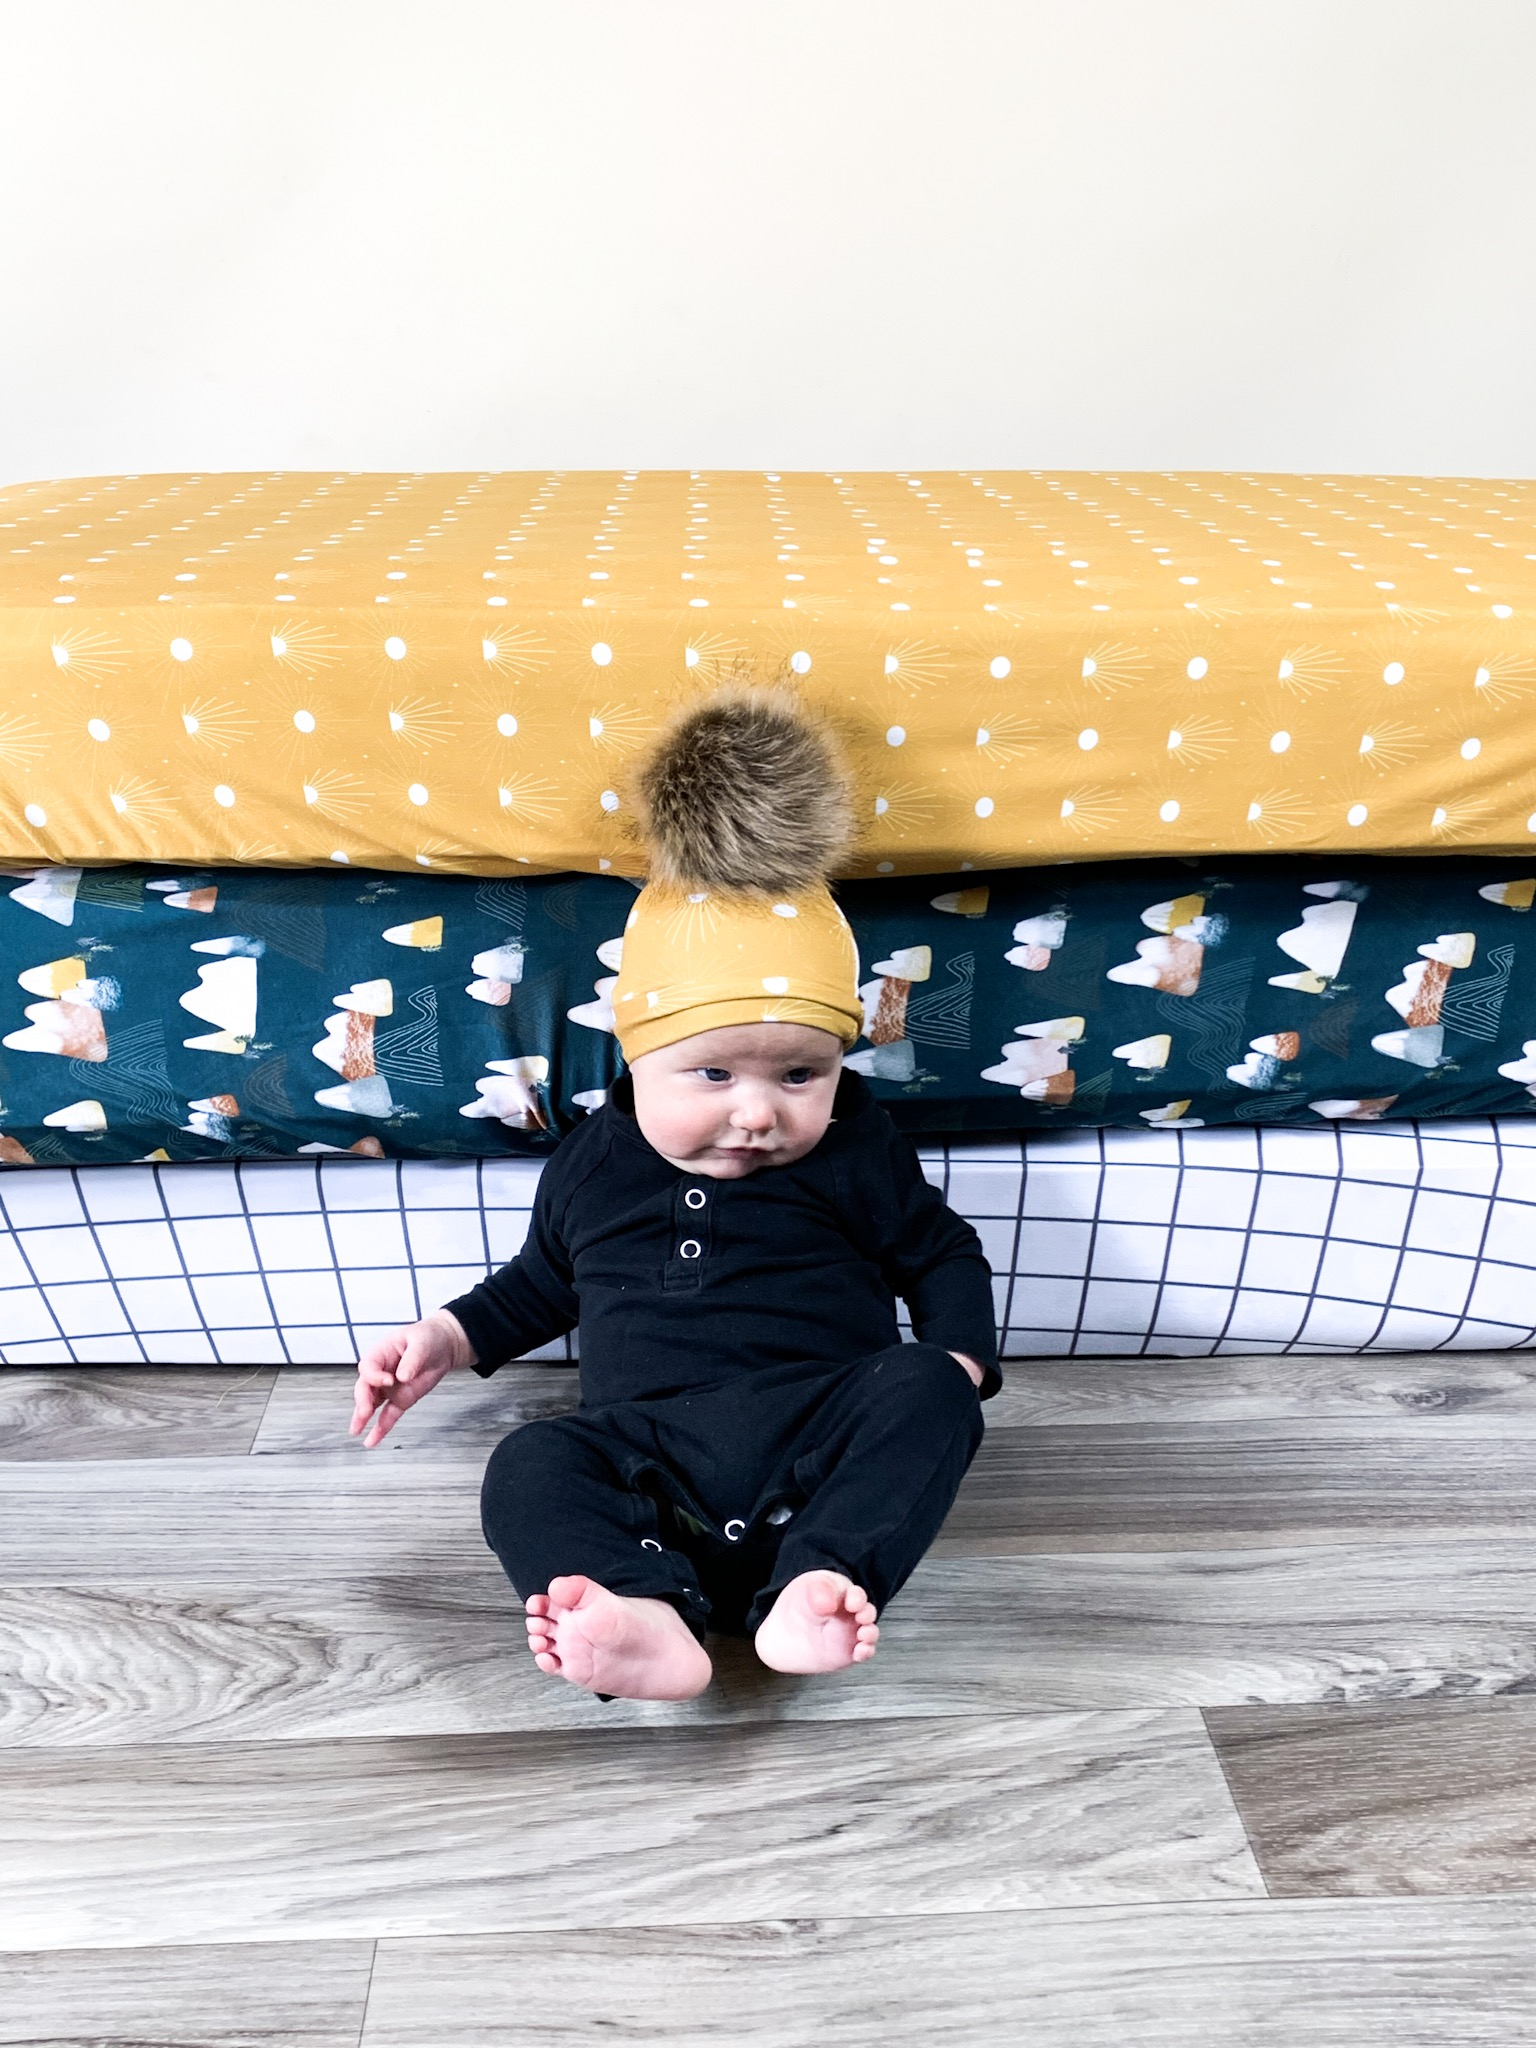 Three baby mattresses with fitted crib sheets behind a baby.